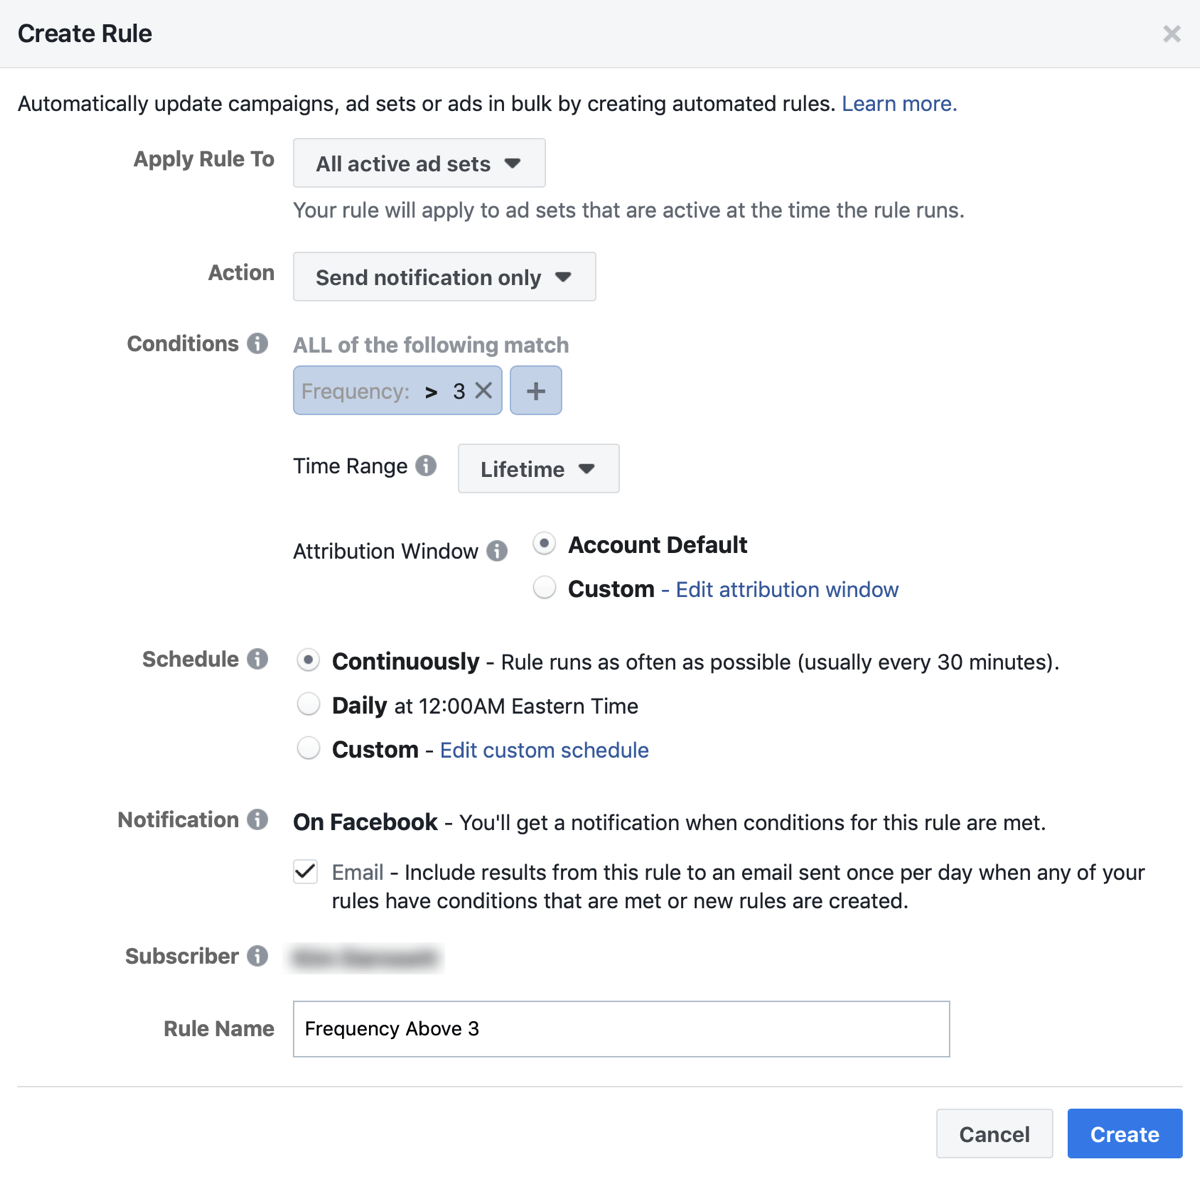 Facebook ad campaign create frequency limit rule settings.